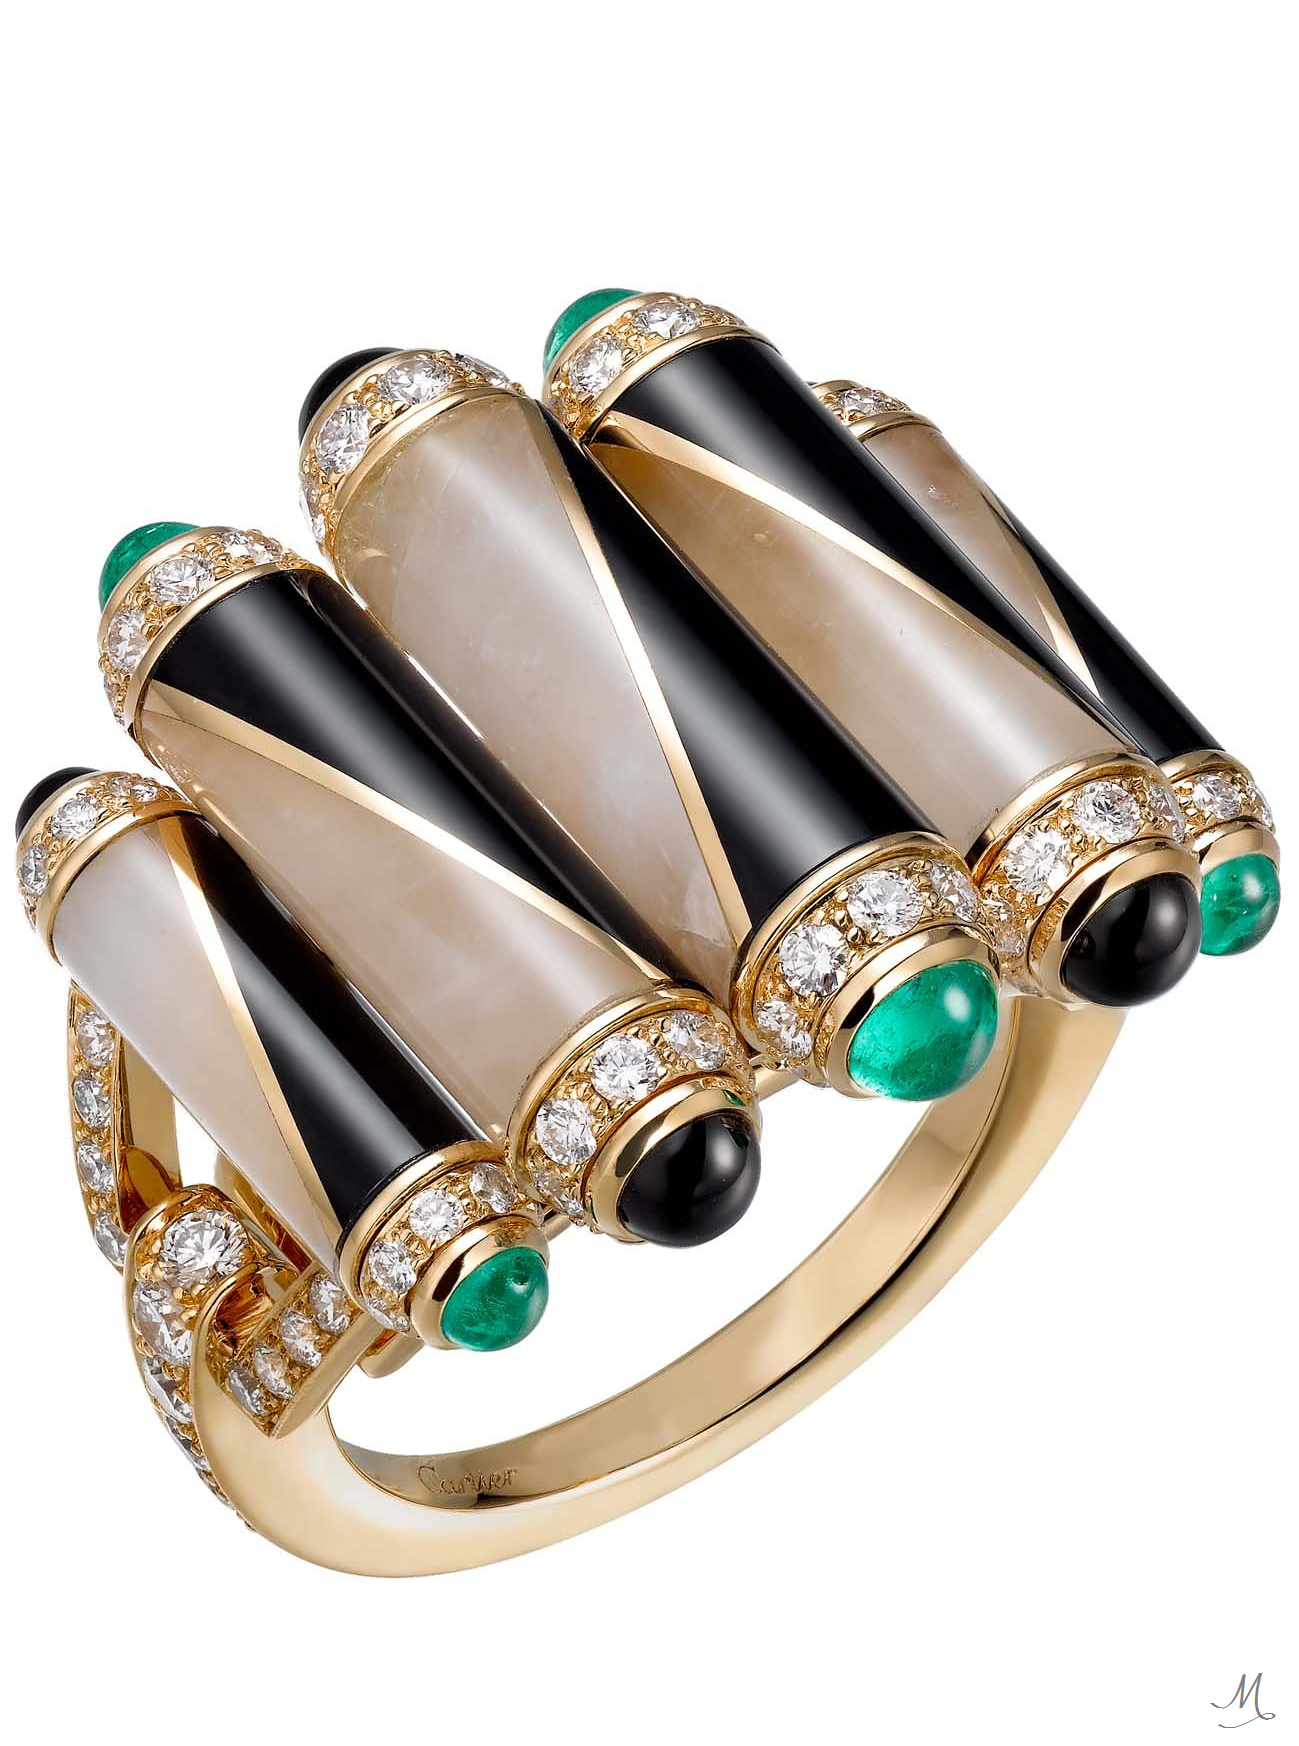 201 Tourdissant Cartier Ring In 18k Yellow Gold Emeralds